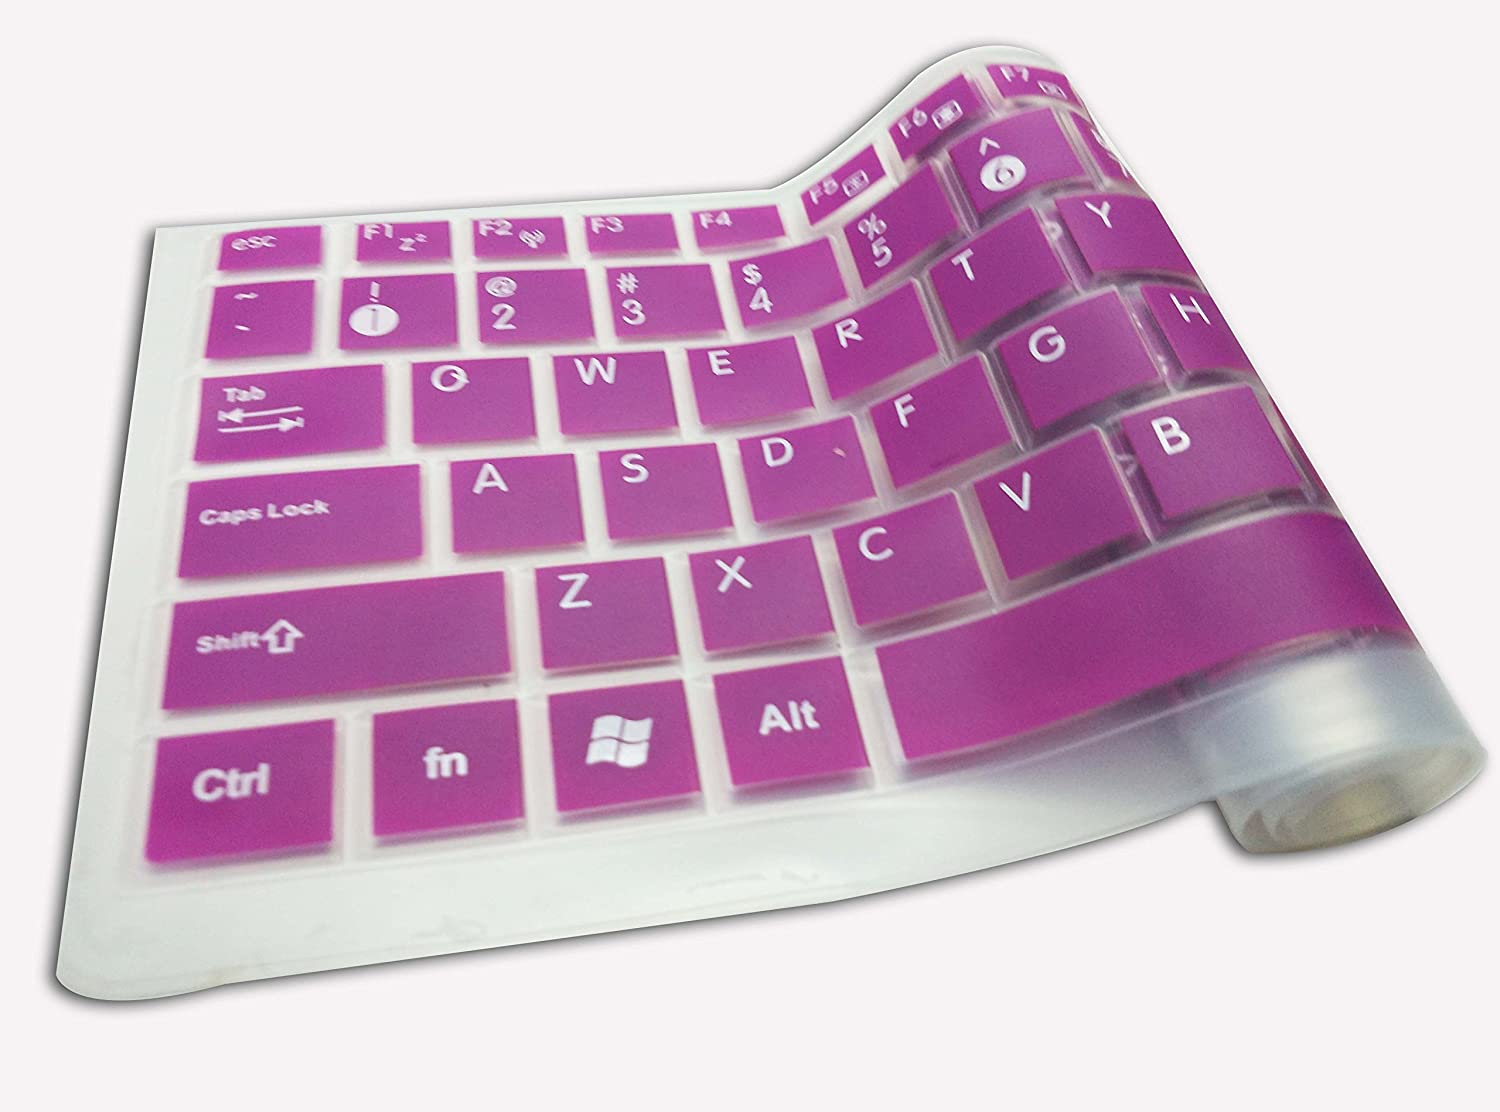 Casiii Dell Silicon Keyboard Cover for Dell Inspiron 15 i5558-5718SLV Signature Edition Laptop (Purple) dell Keyboard Cover dell inspiron Keyboard Cover dell Laptop Laptop Keyboard Covers dell Laptop